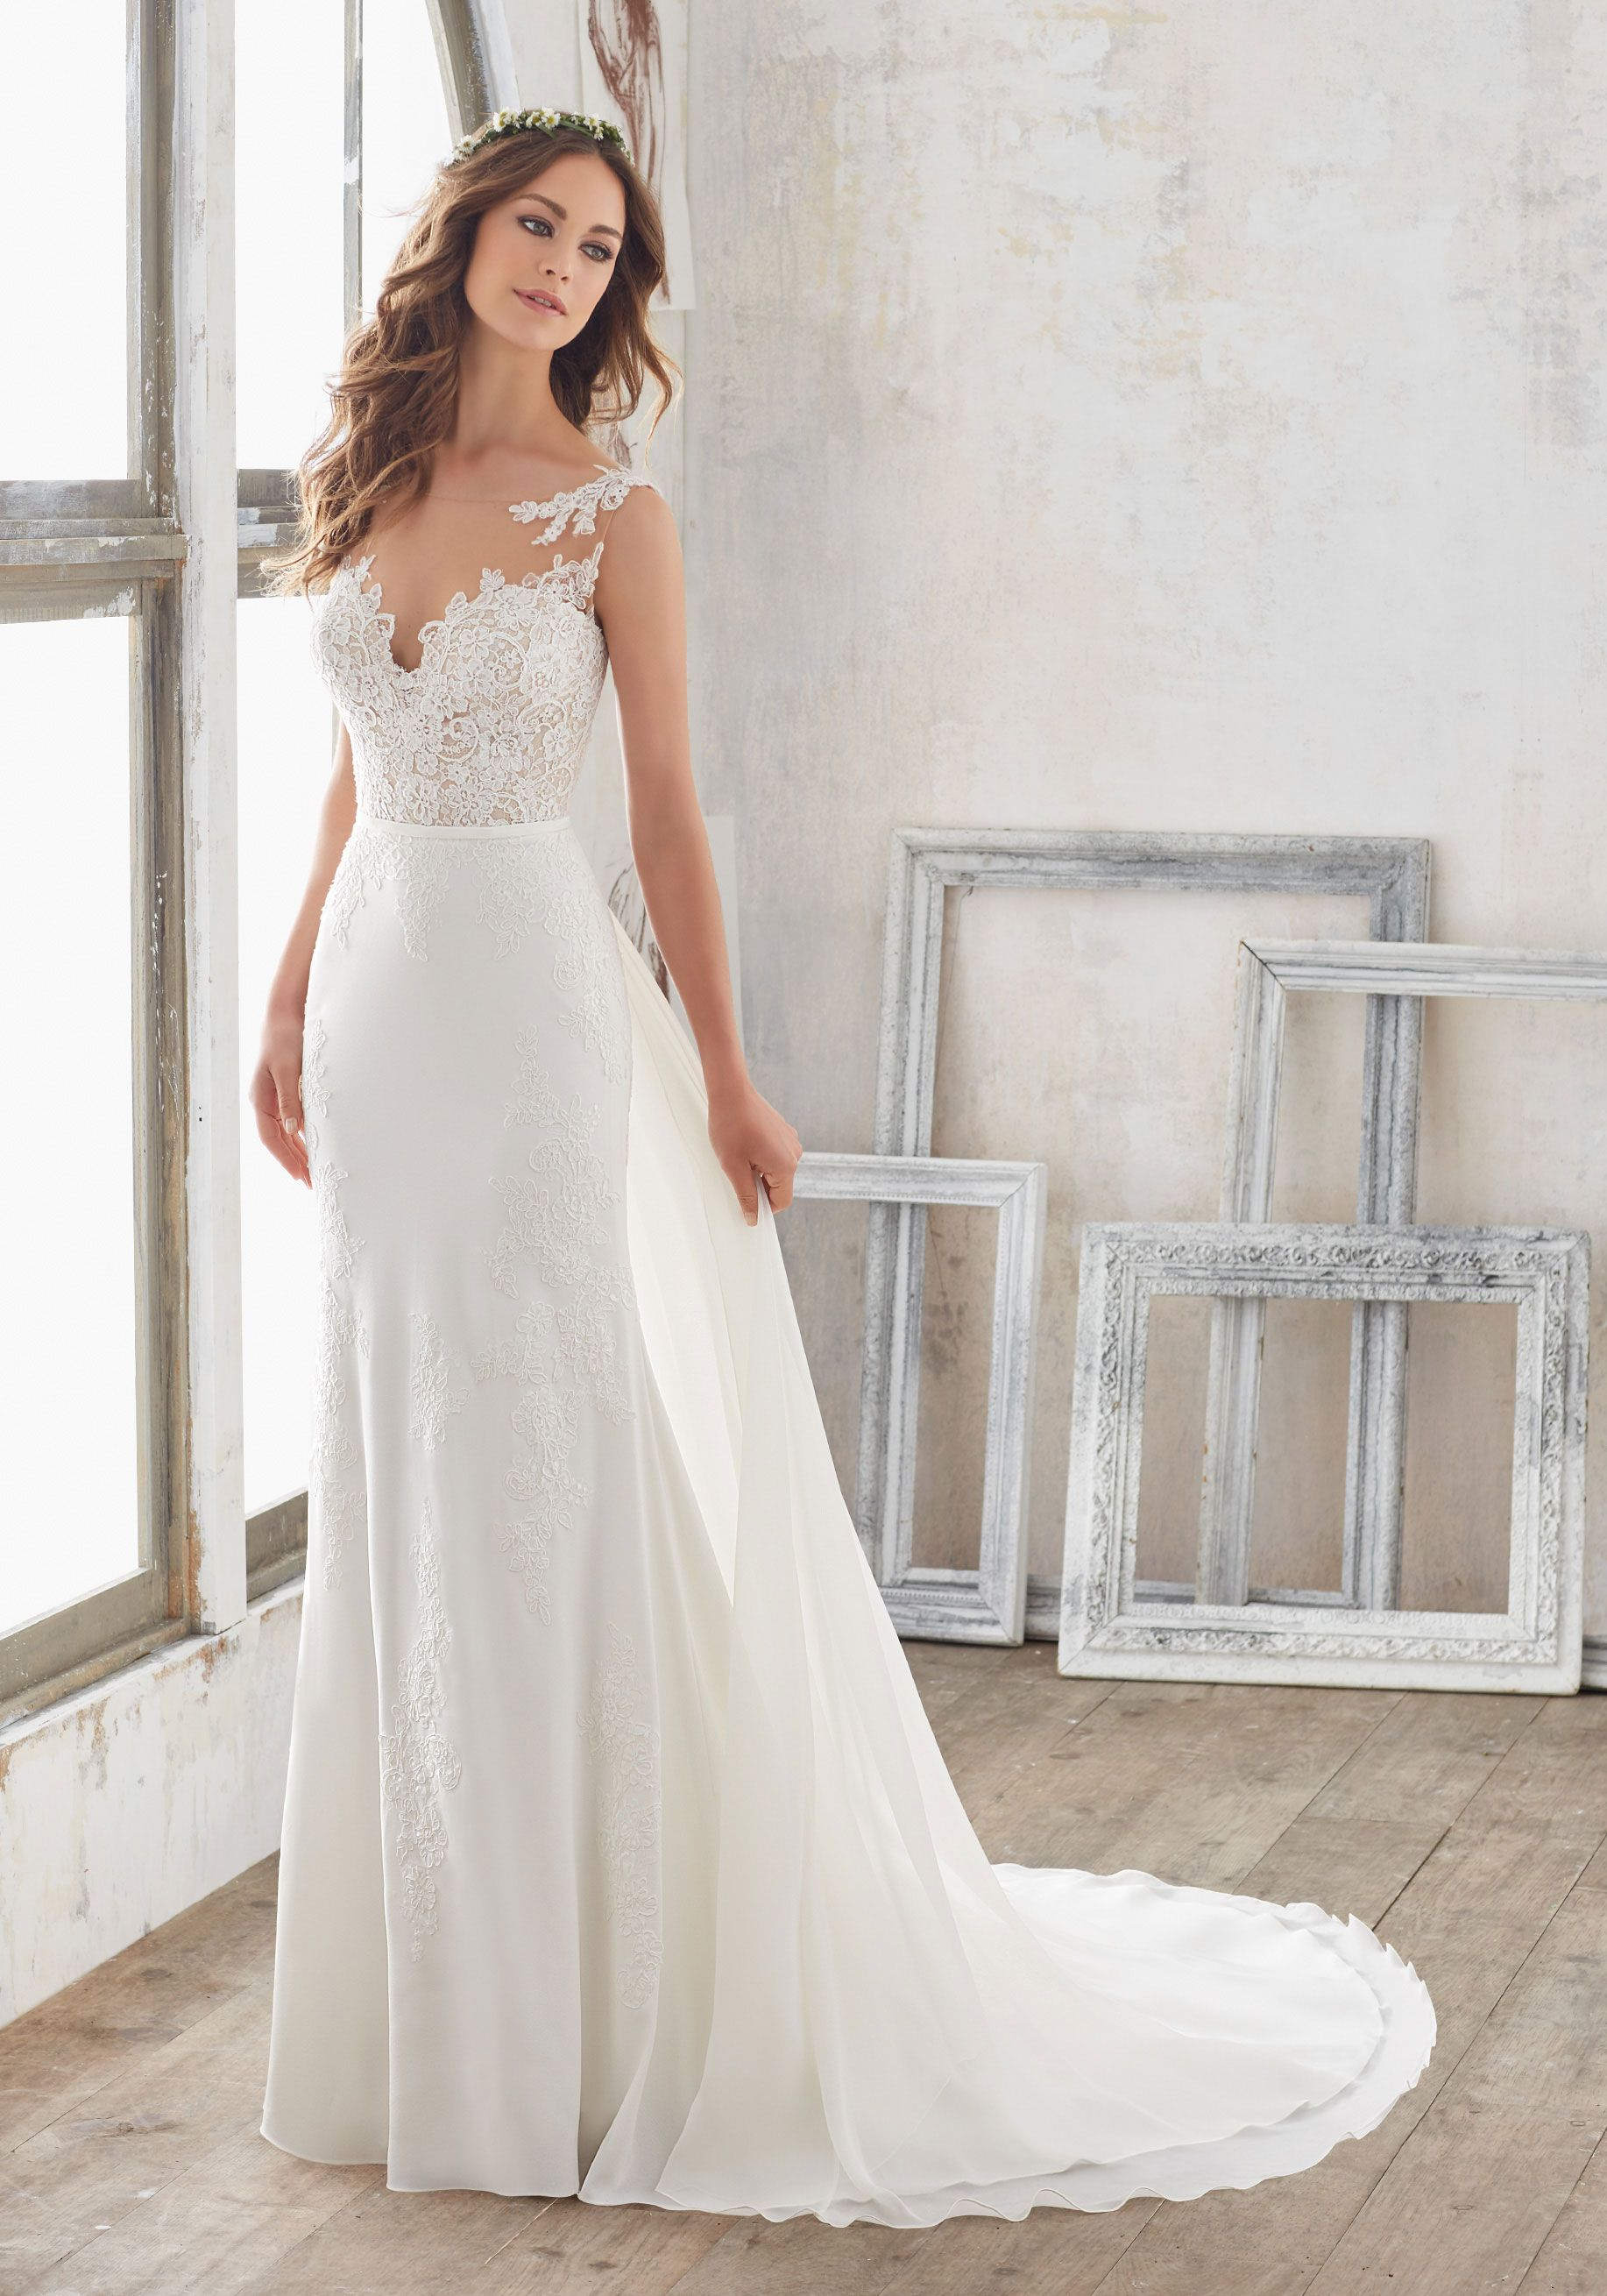 Nice Wedding Dresses and Bridal Gowns by Morilee designed by Madeline Gardner This Sheath Bridal Gown